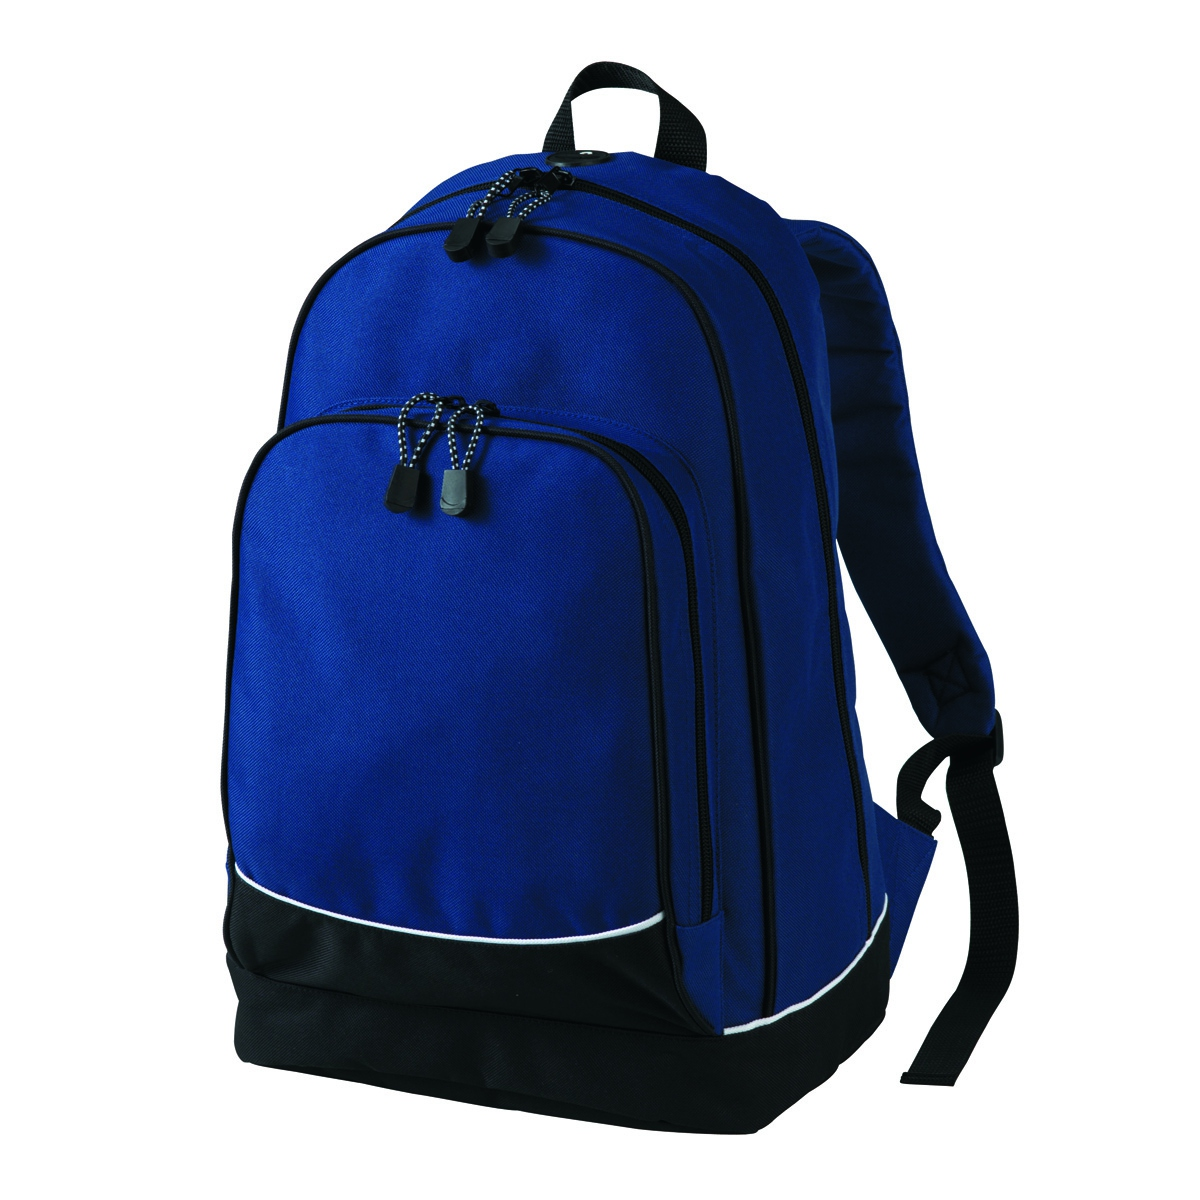 Sac à dos loisirs - CITY BACKPACK - 1803310 - bleu marine